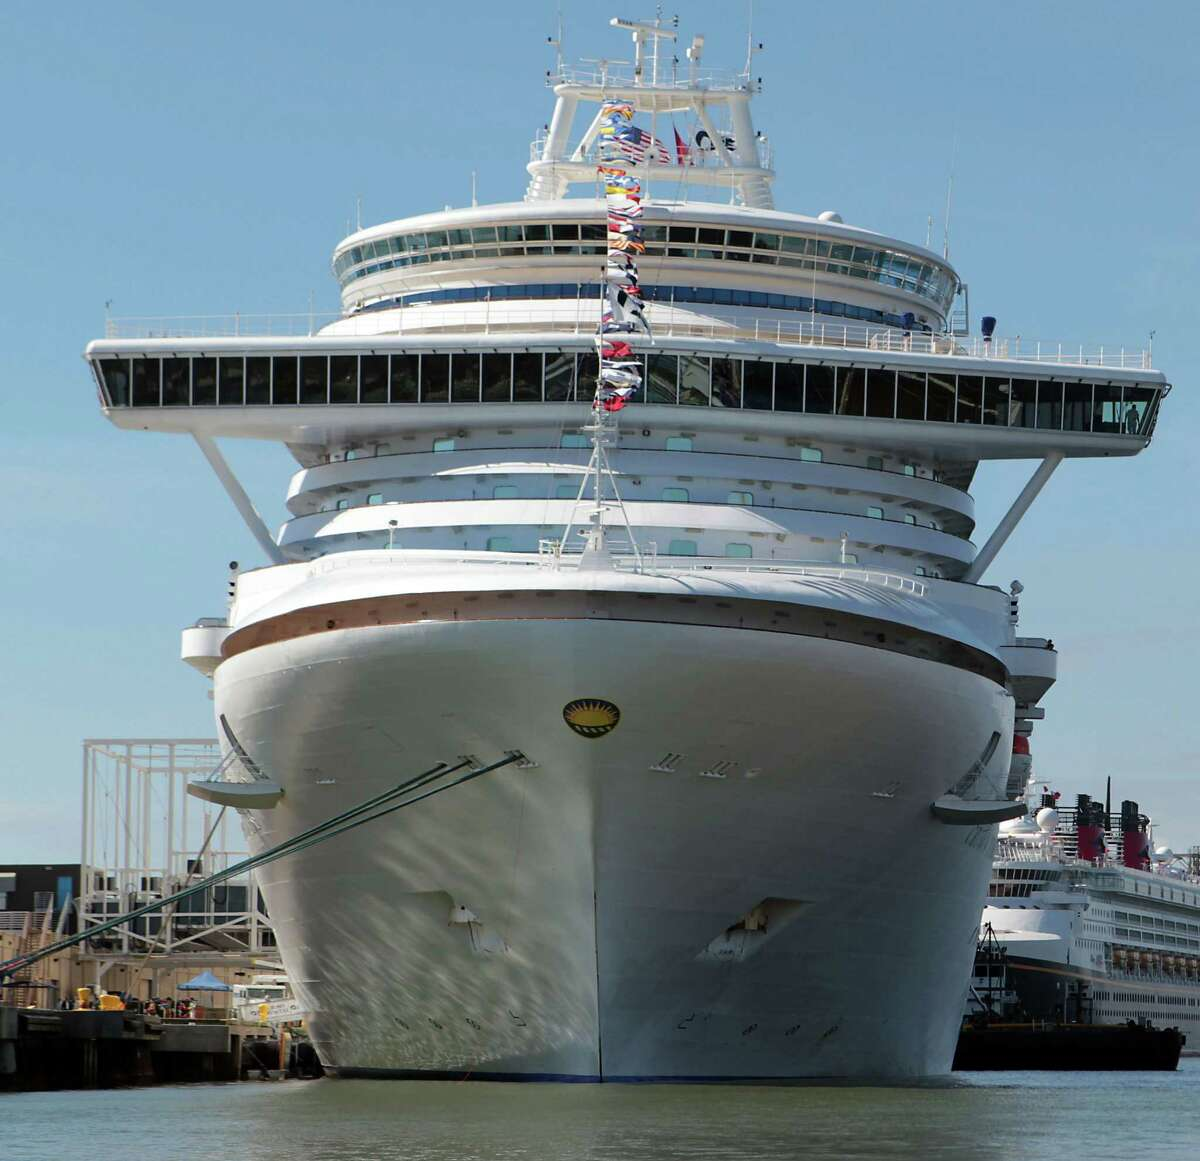 In December, 96 passengers aboard the Crown Princess cruise ship became ill with gastroenteritis during a cruise to Italy.